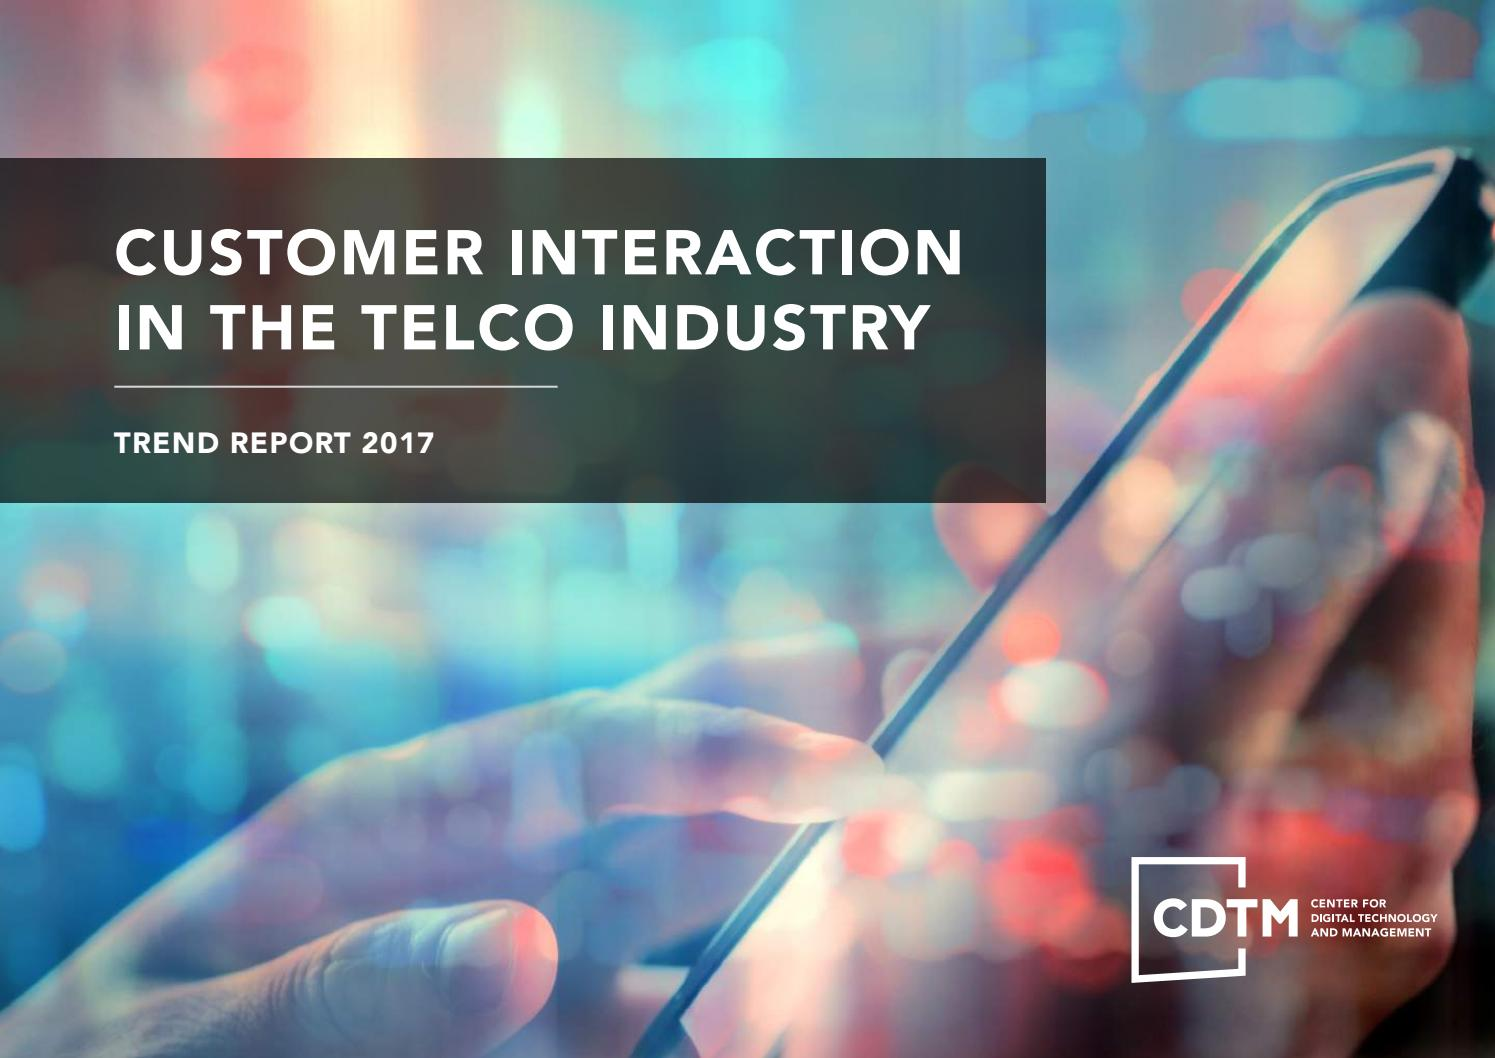 CDTM Trendreport: Customer Interaction in the Telco Industry